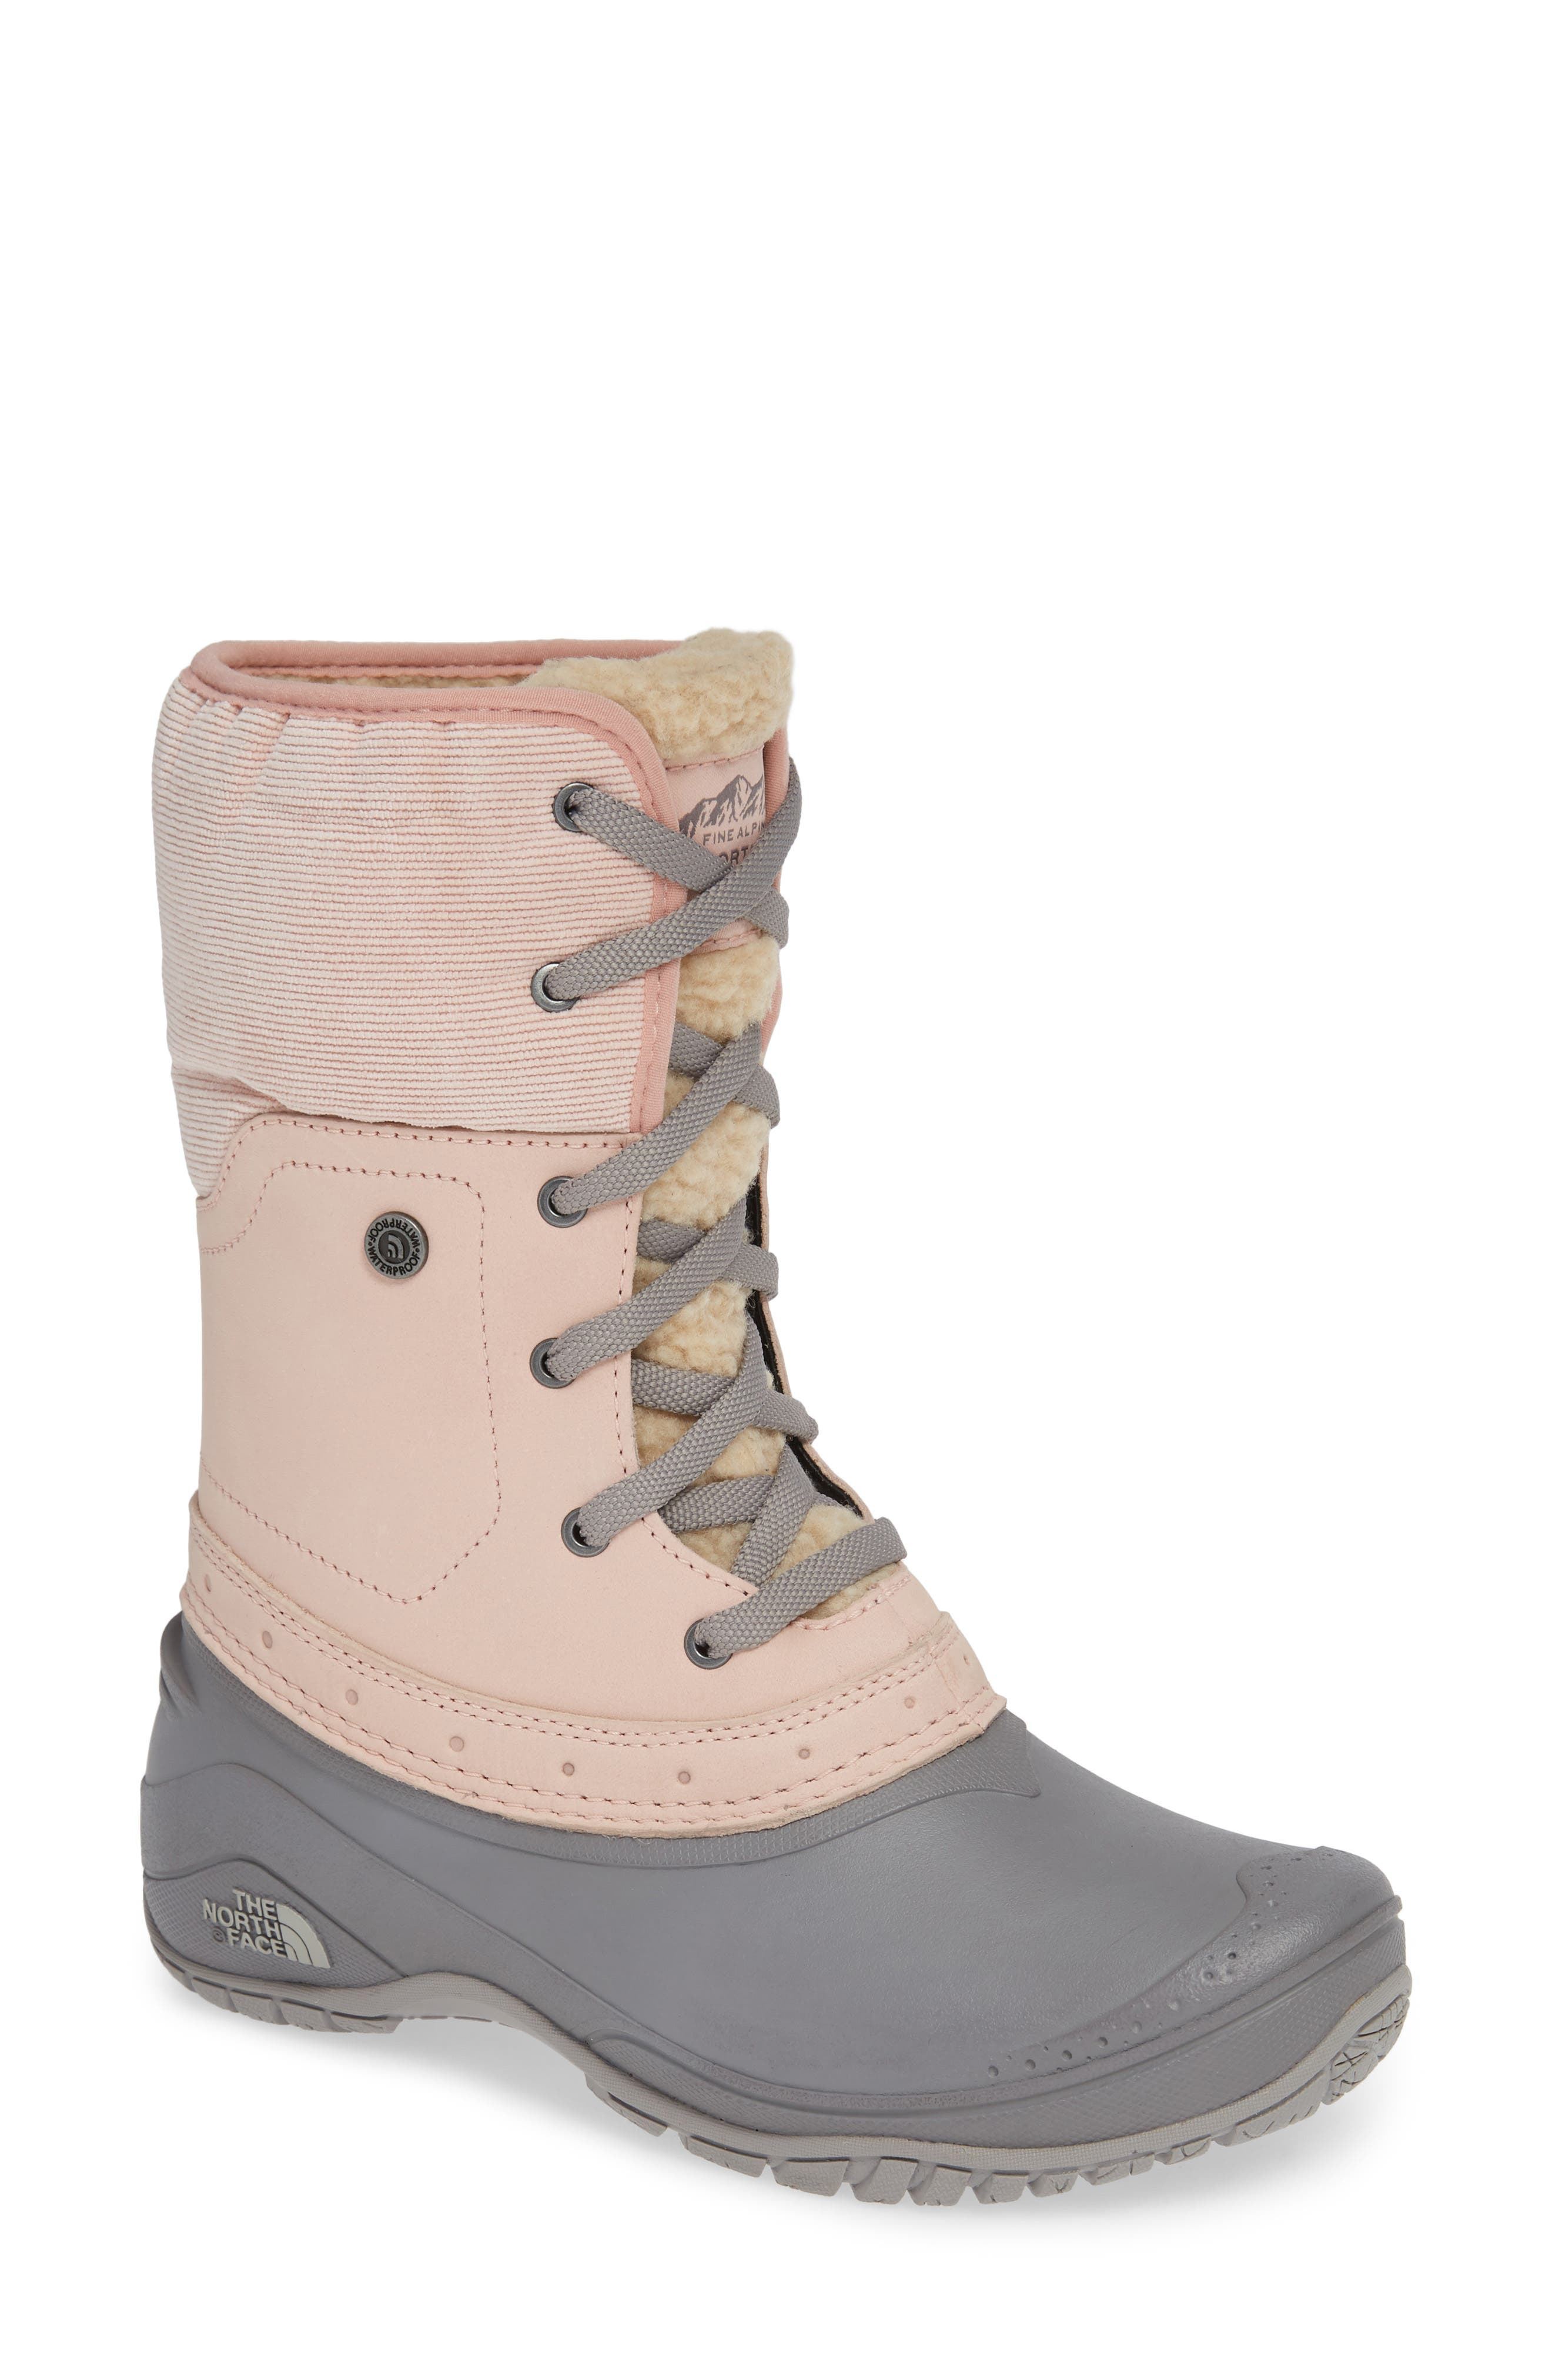 The North Face Shellista Roll Cuff Waterproof Insulated Winter Boot, Pink